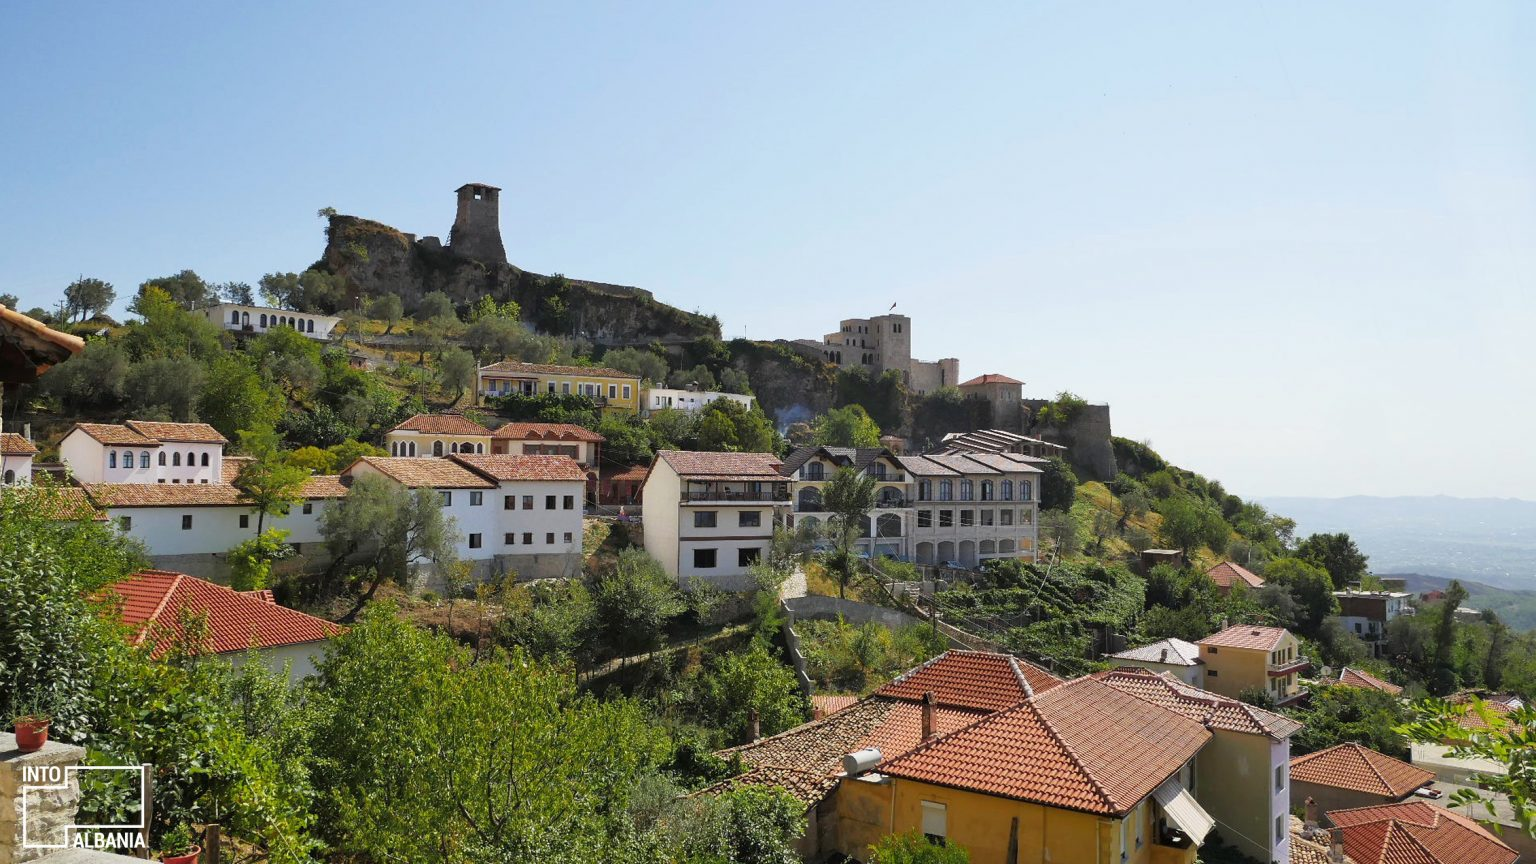 Castle view from the city of Kruja, photo by IntoAlbania